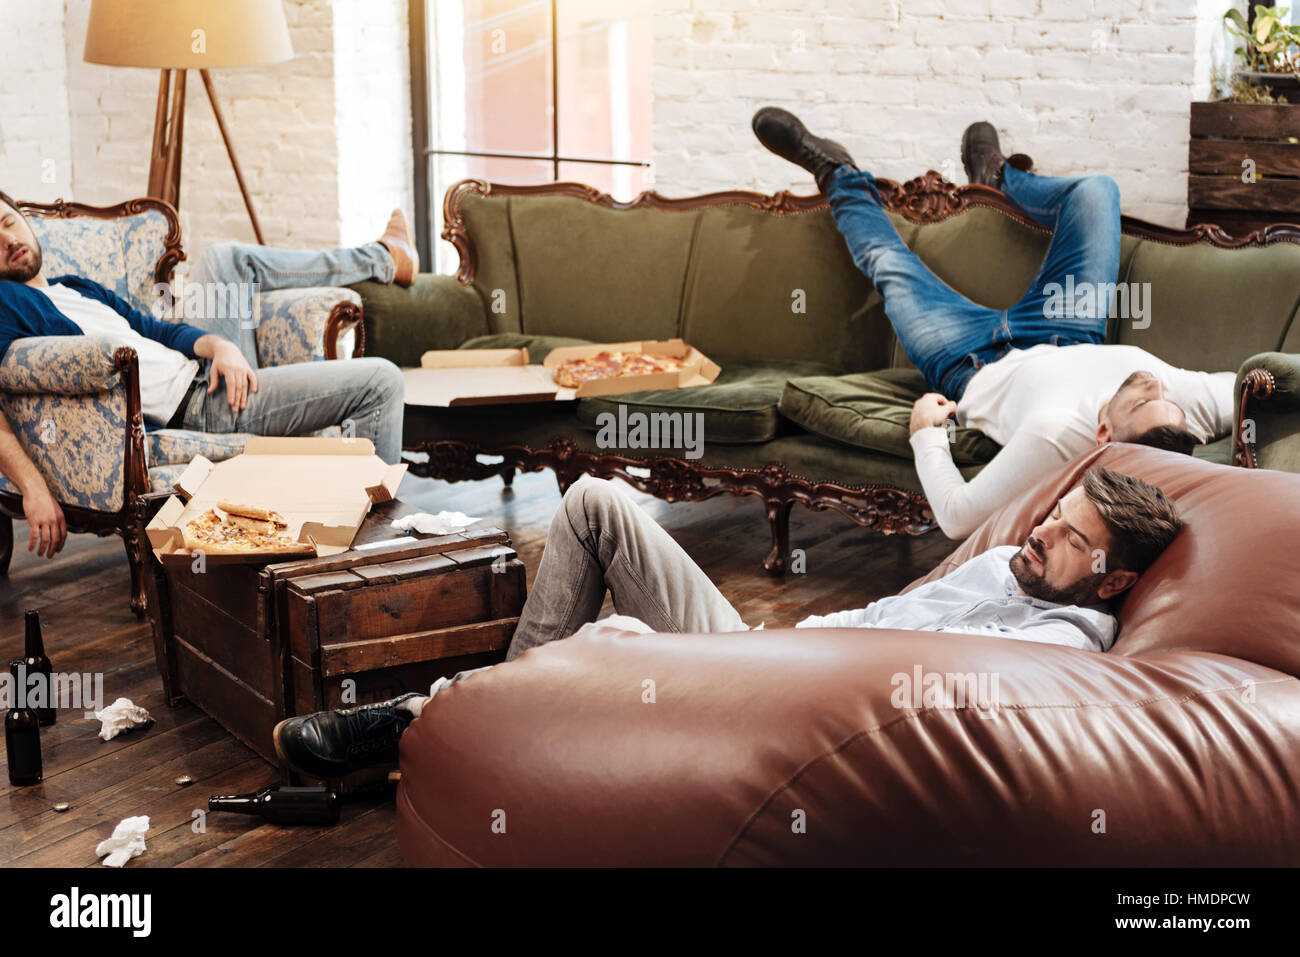 Tired bearded man resting after a bachelors party - Stock Image